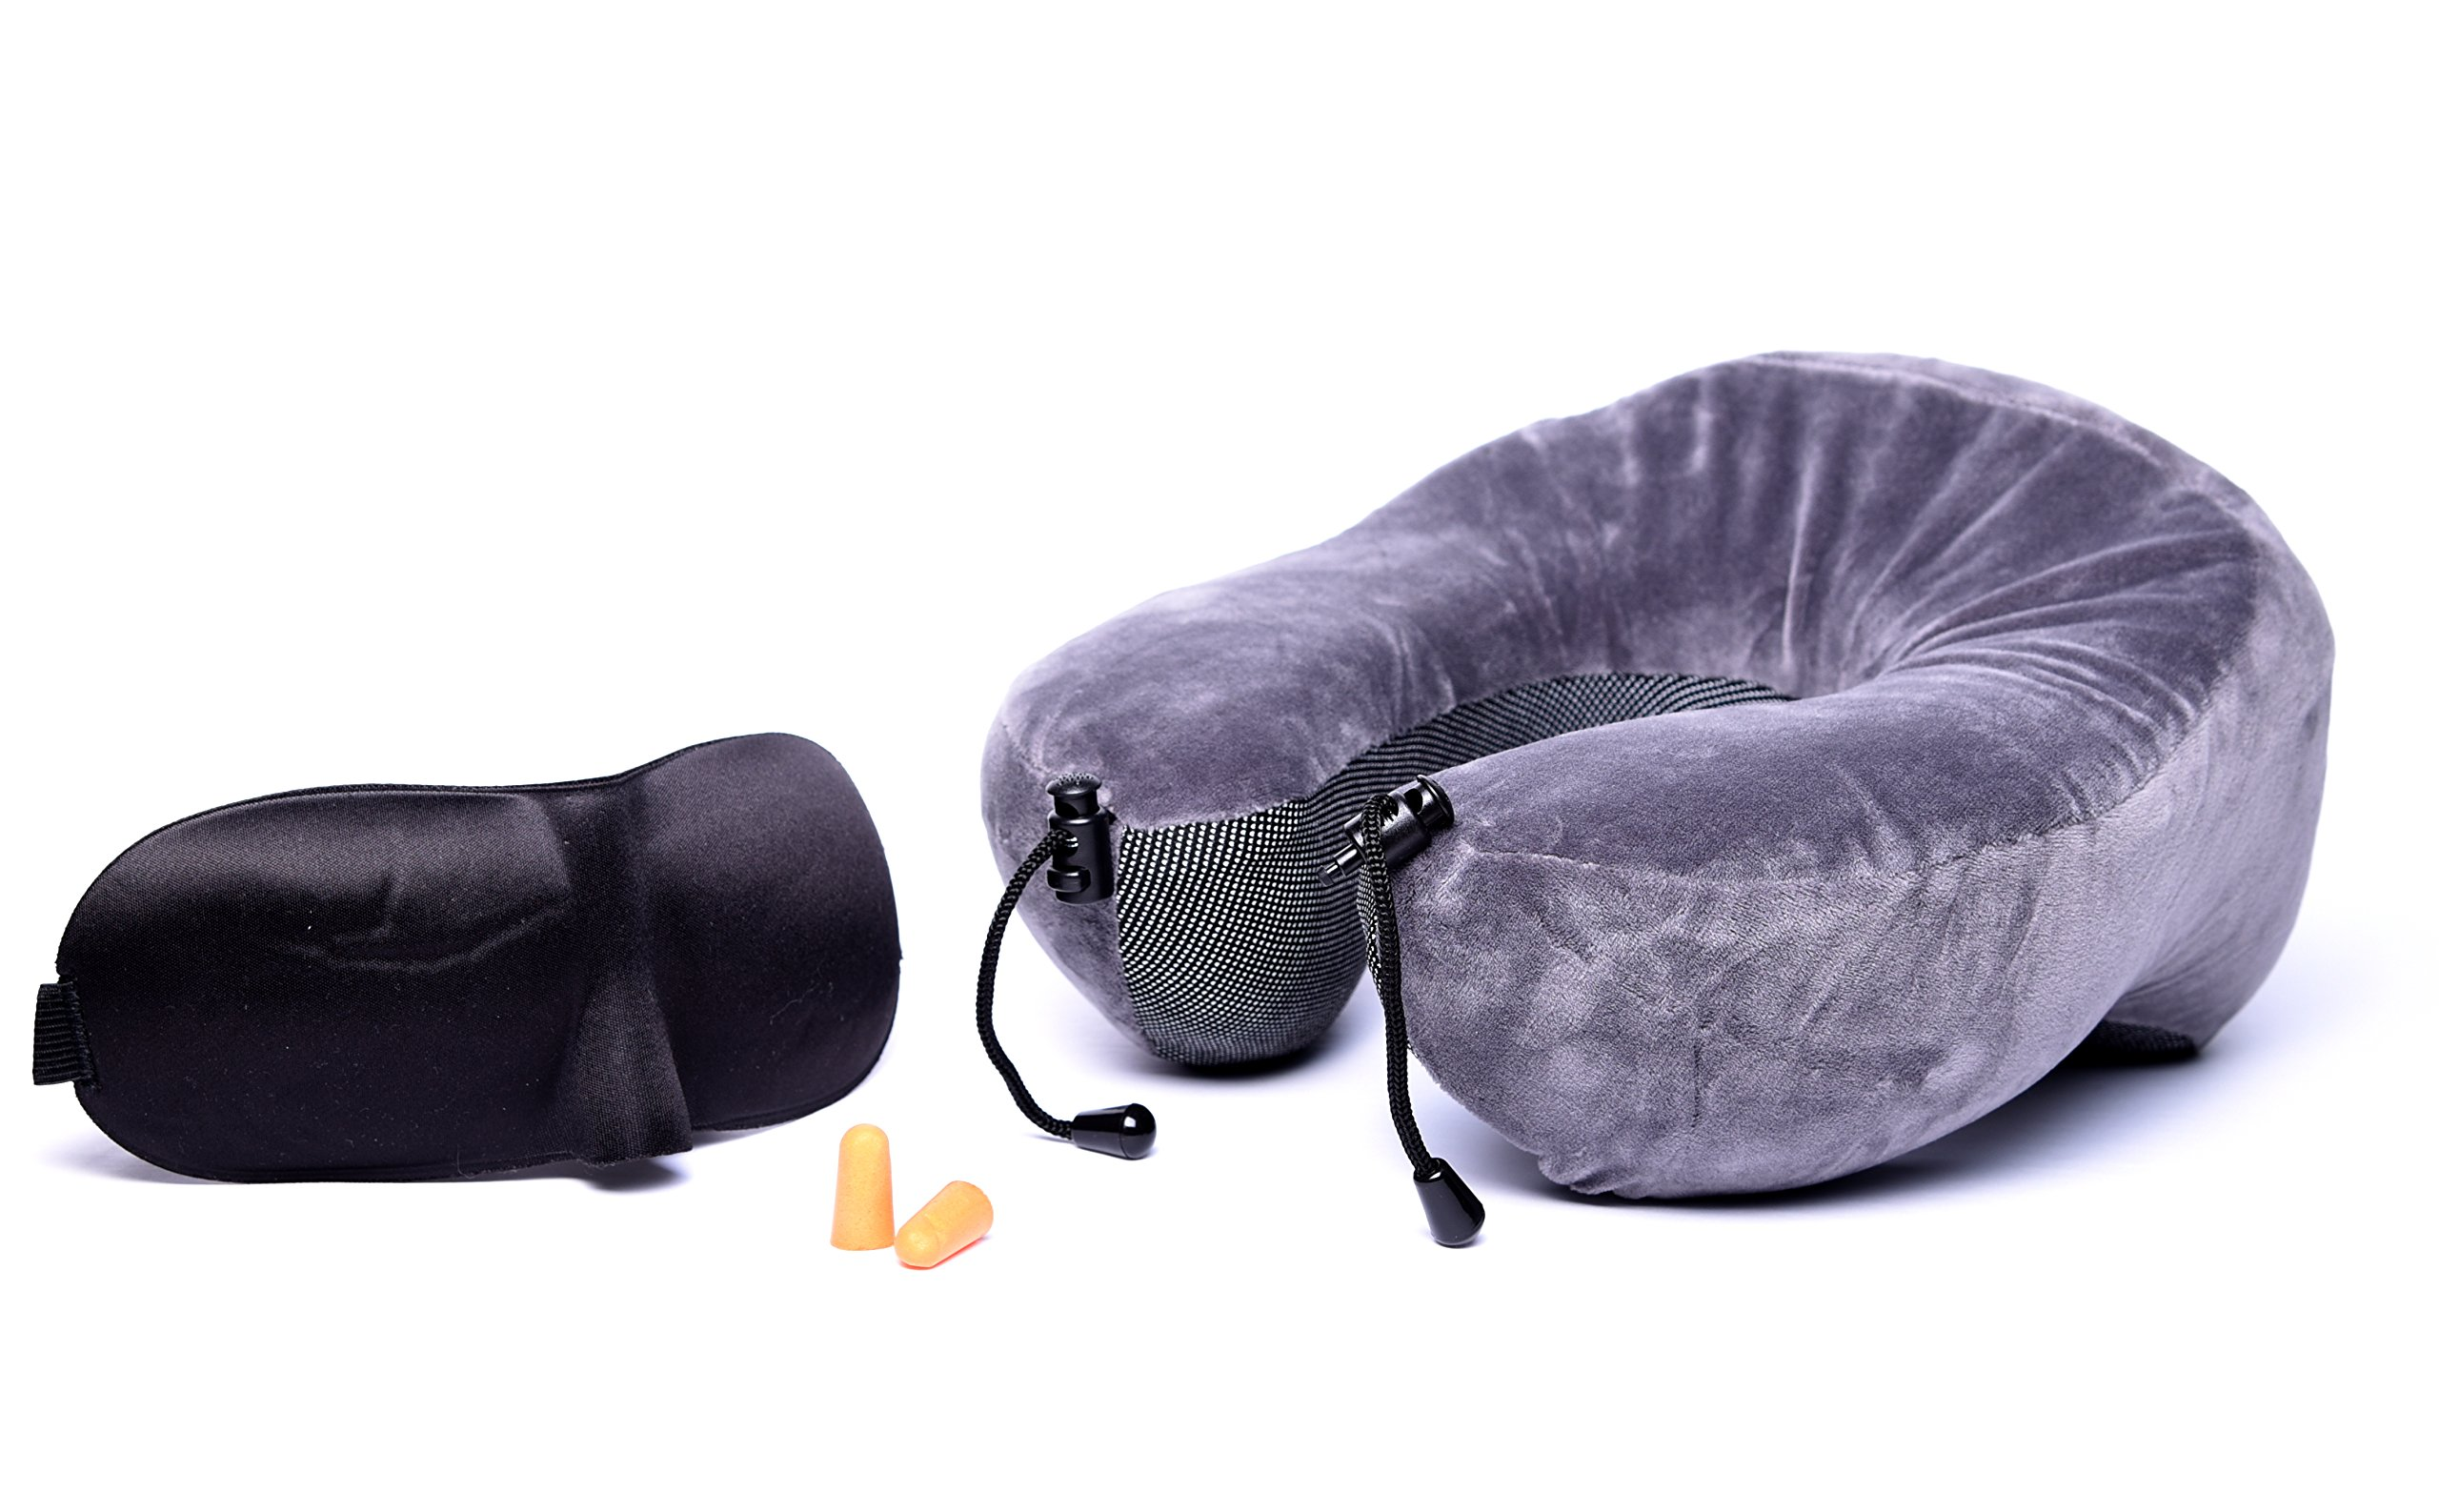 Adventugo Premium Contour Memory Foam Travel Neck Pillow Kit with Contour Eye Mask and Ear Plugs